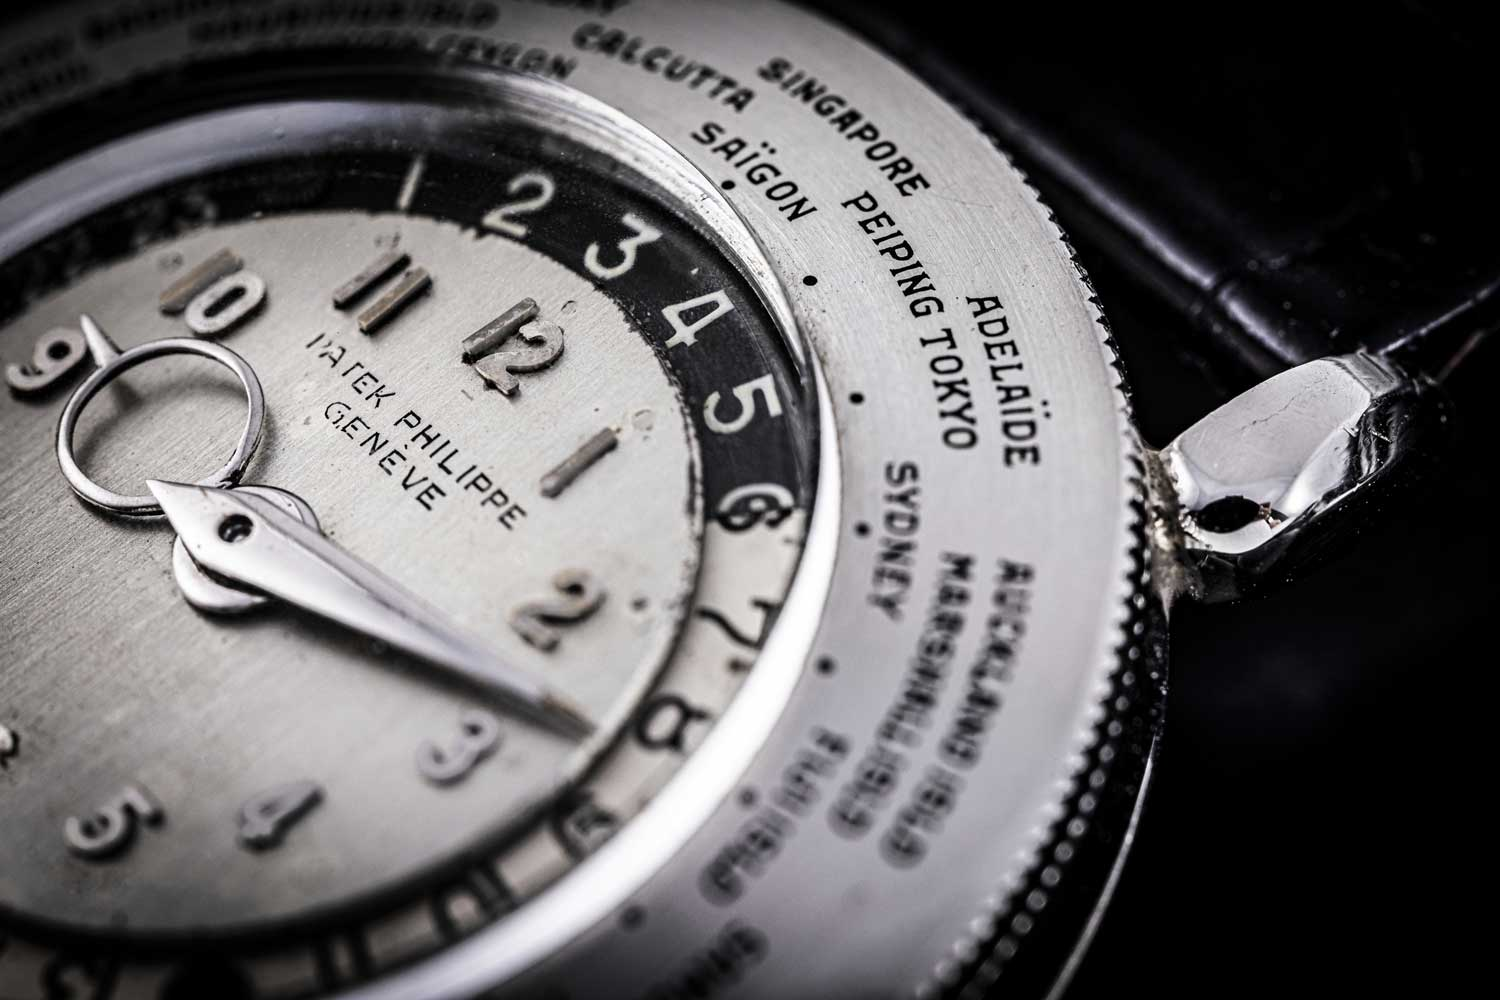 The platinum ref. 1415 HU showed up in the market again this year as part of Christie's The Legends of Time, an auction of some of the most remarkable timepieces from the 19th and 20th century.